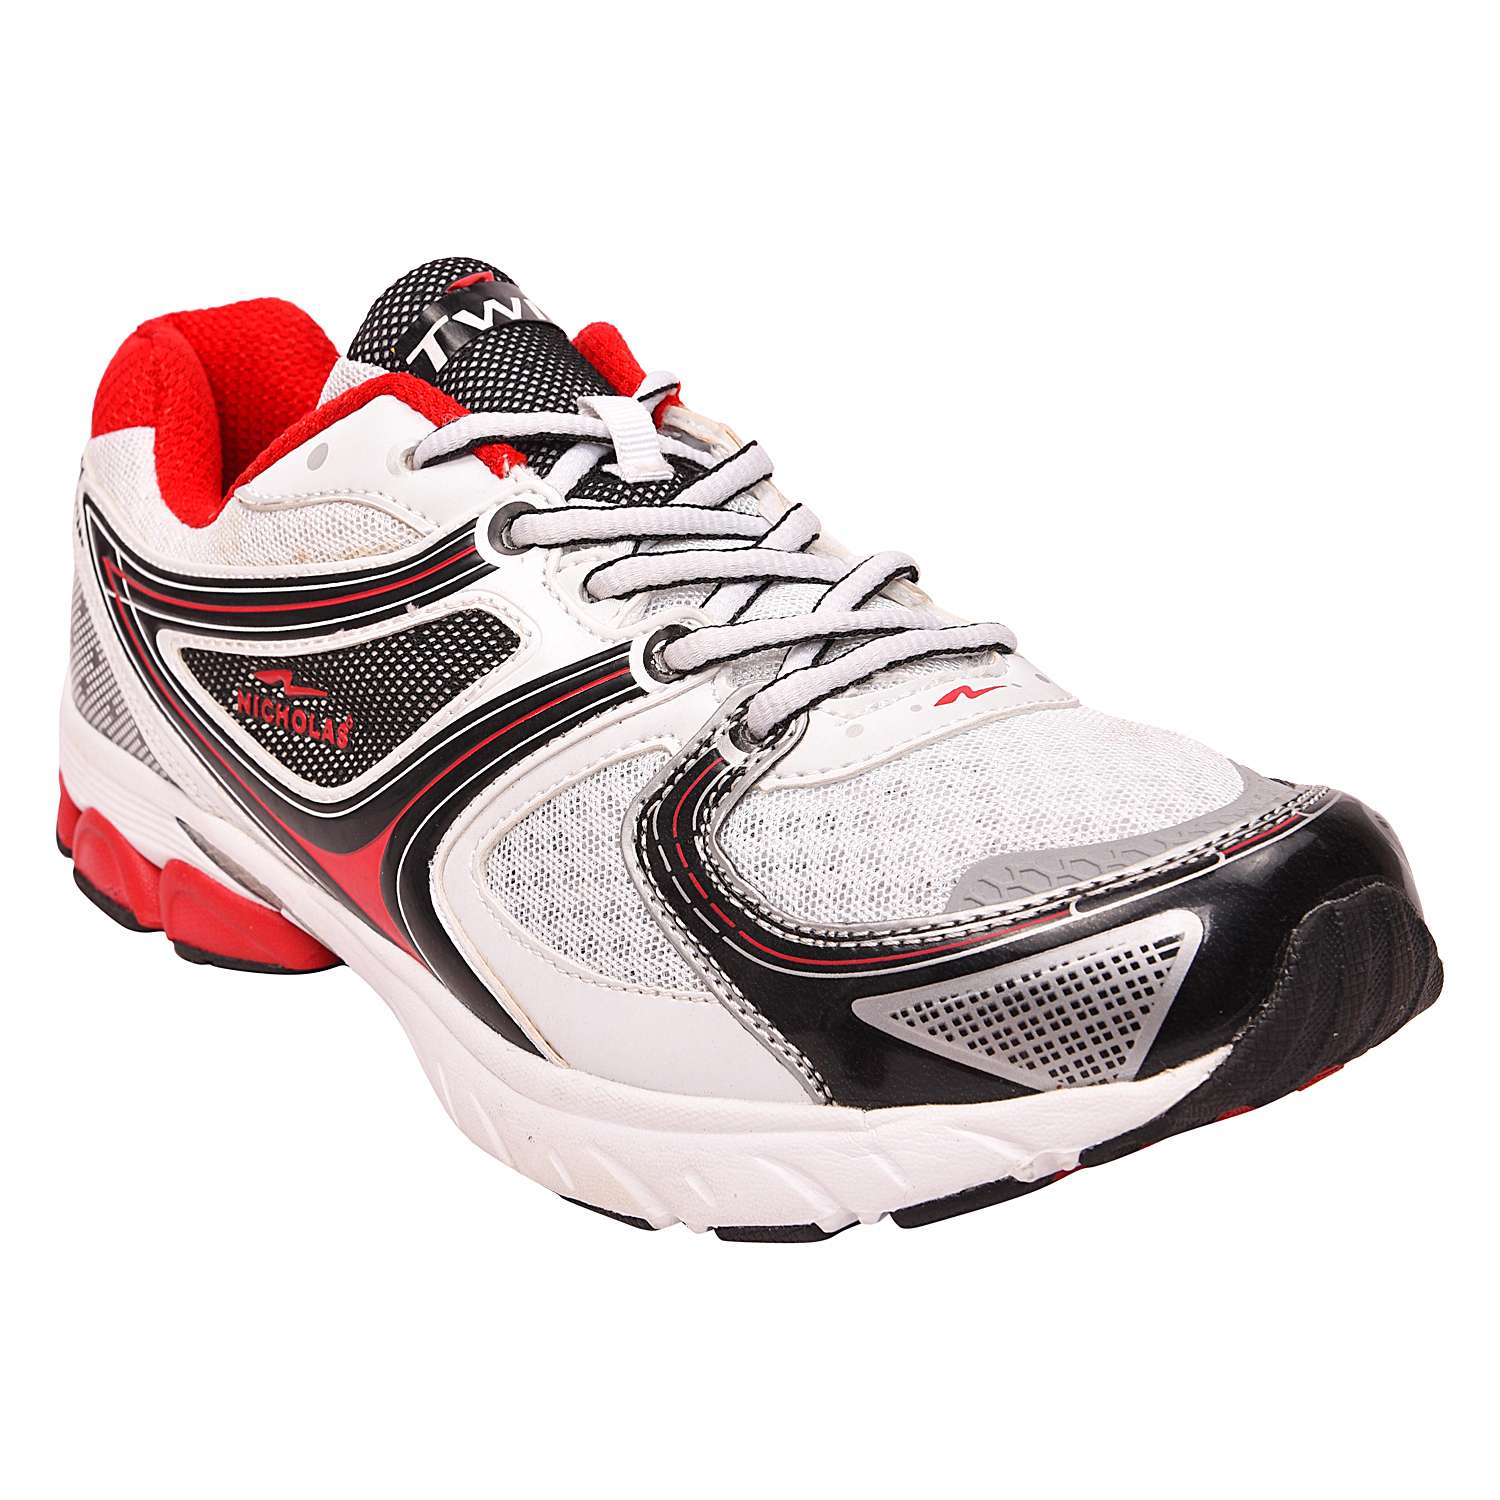 Mens Sports shoe TPH-919_White and Red colour